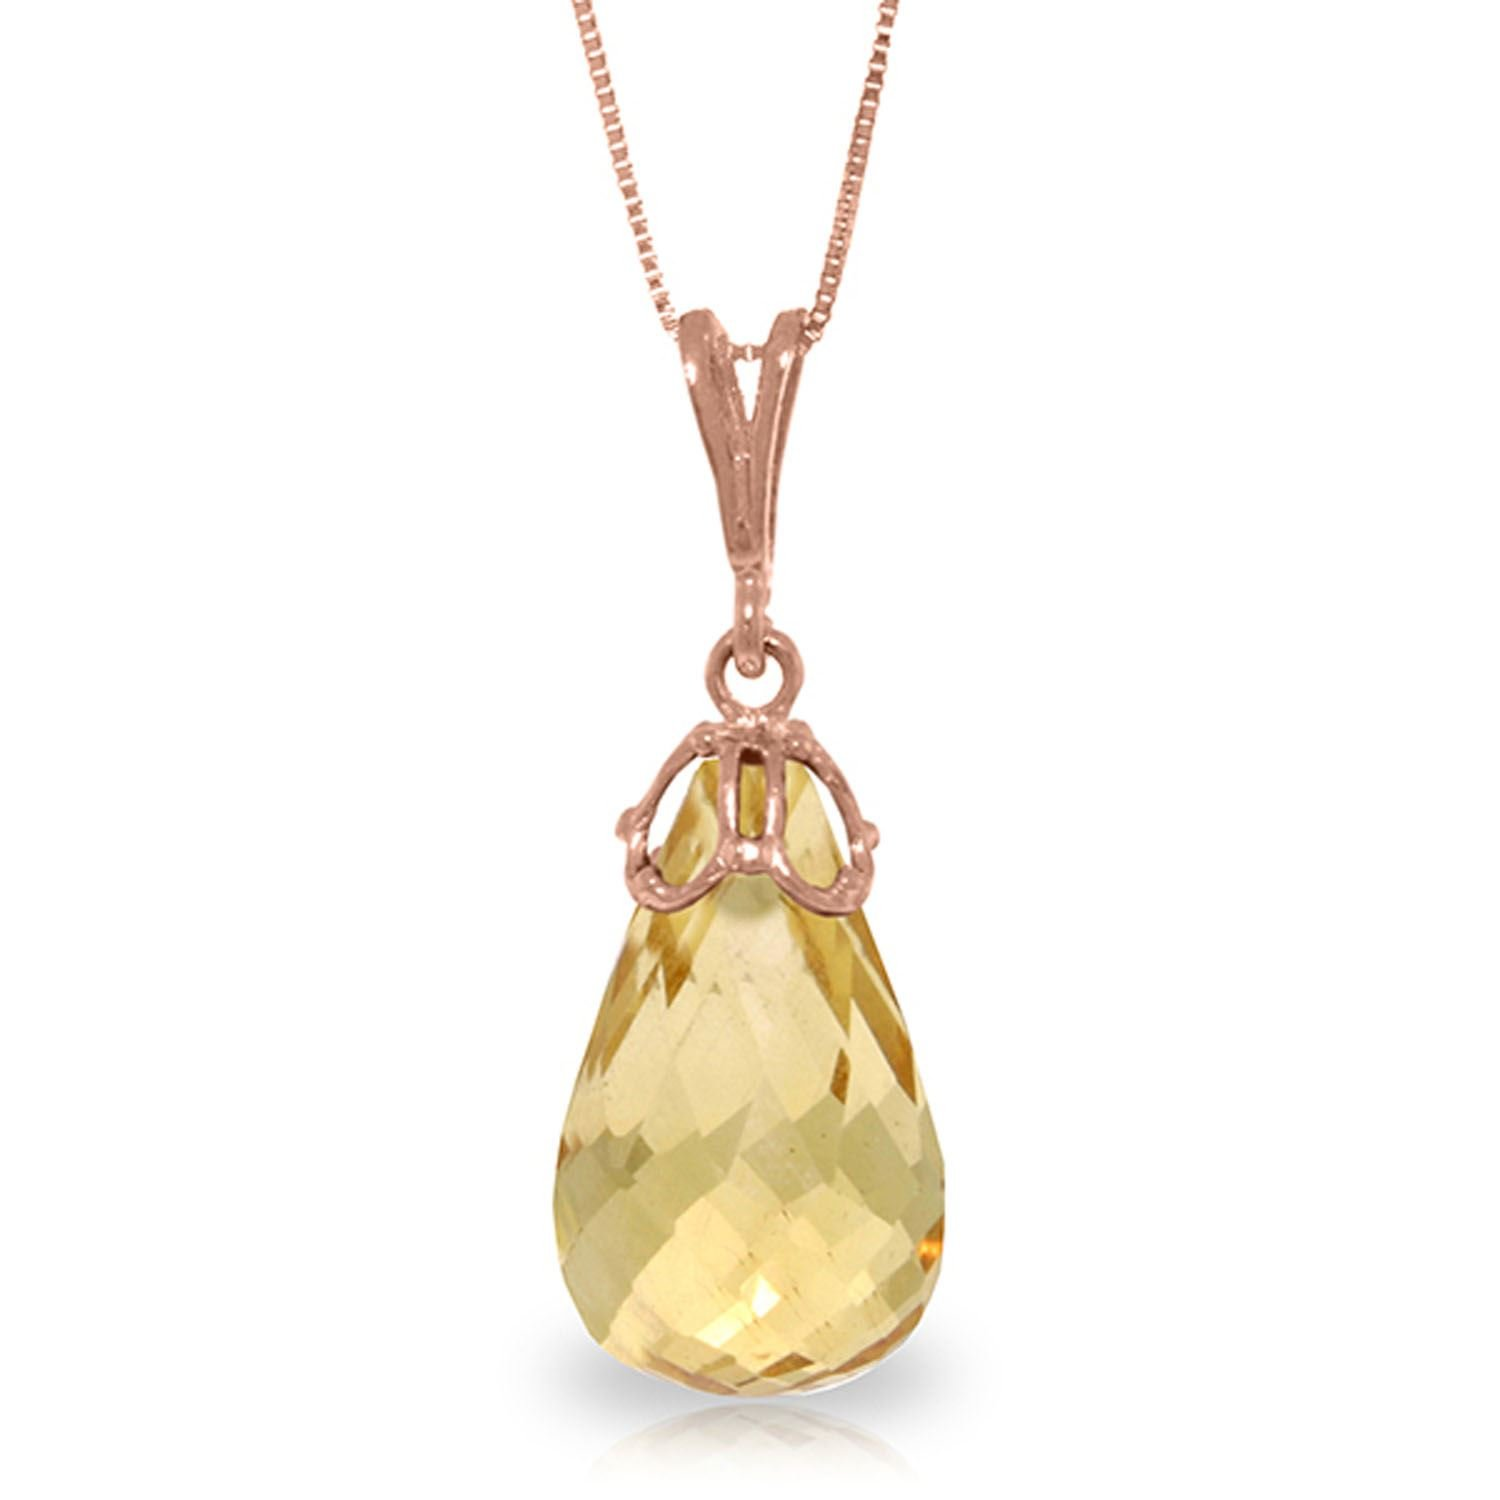 ALARRI 7 Carat 14K Solid Rose Gold Raindrop Citrine Necklace with 18 Inch Chain Length